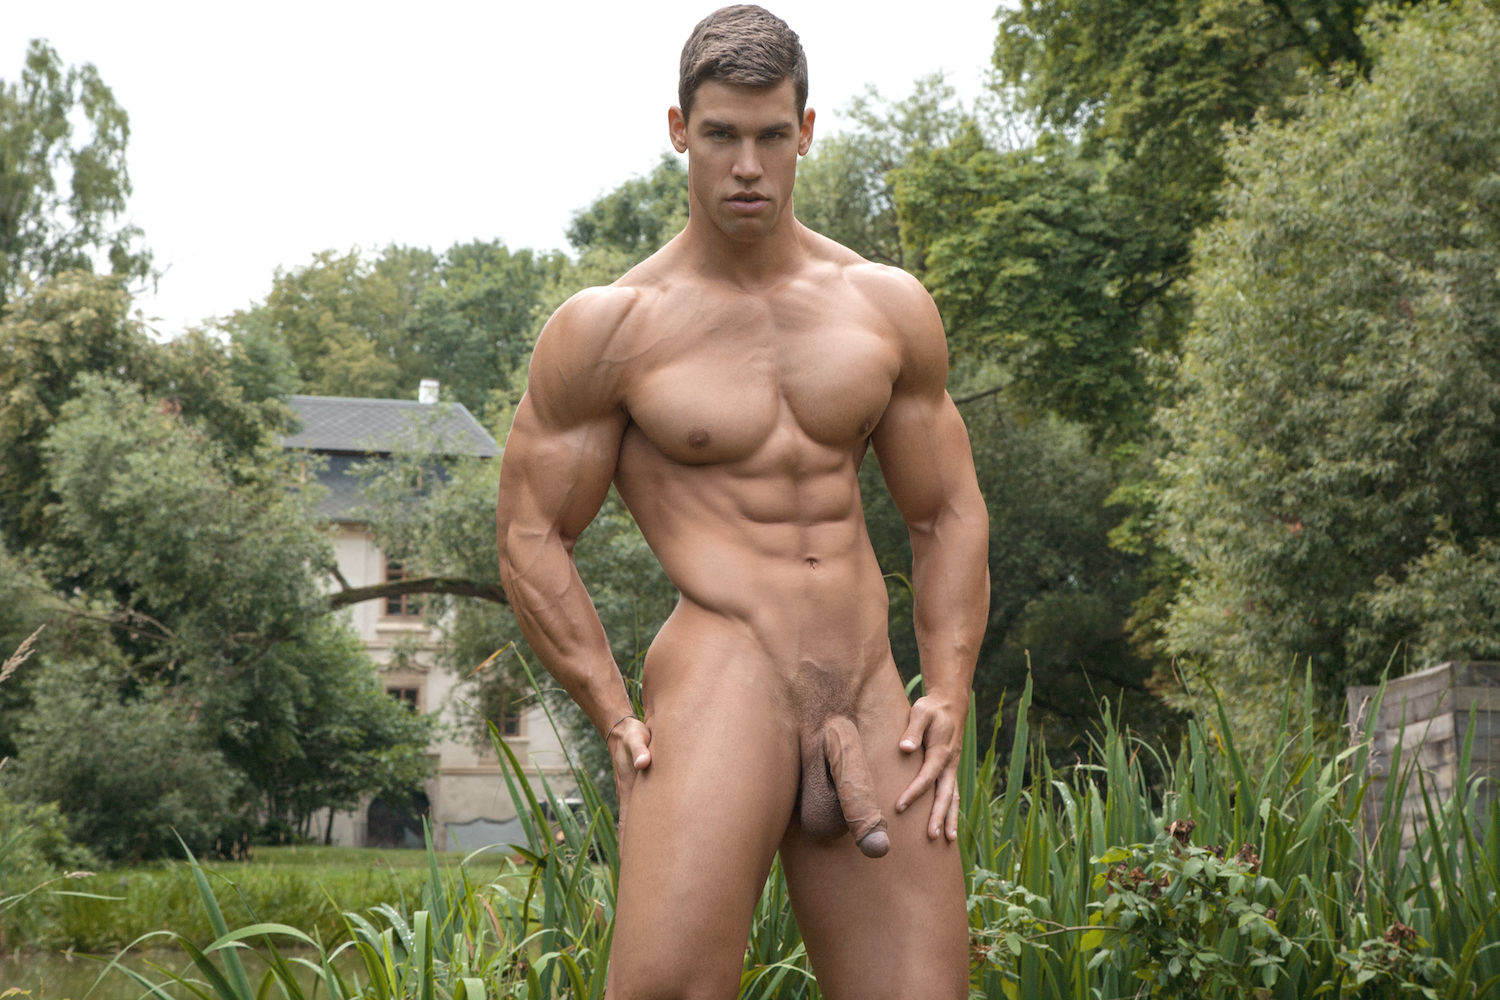 pussy-muscle-young-men-nude